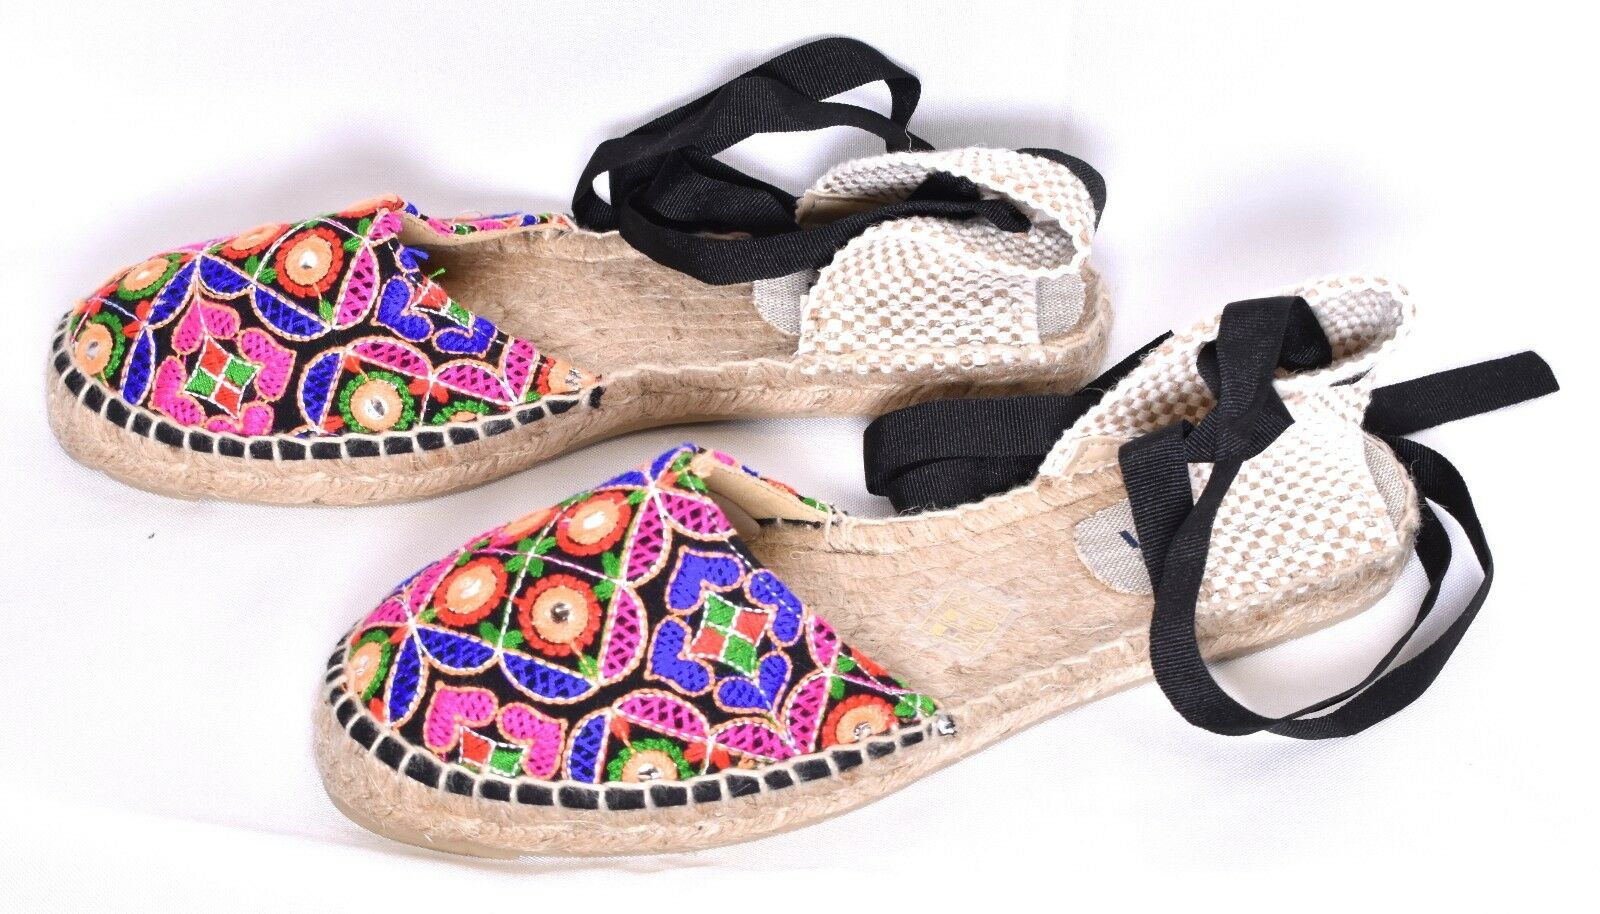 MANEBI Women's Mirror Embellished Canvas Espadrilles shoes (Size 38   7.5)  NEW